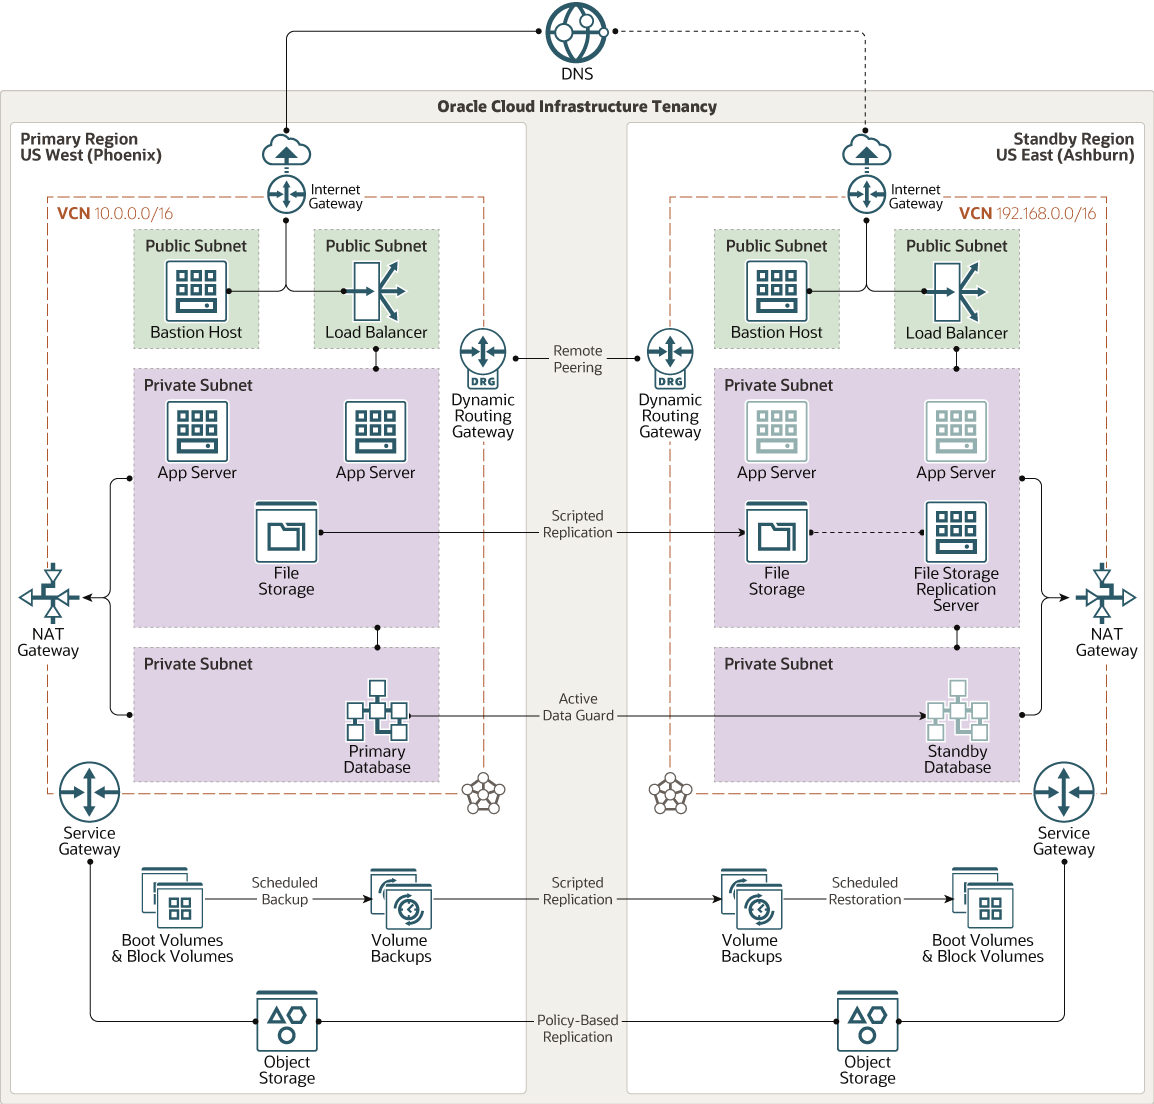 How to create a pilot-light disaster recovery Architecture in OCI